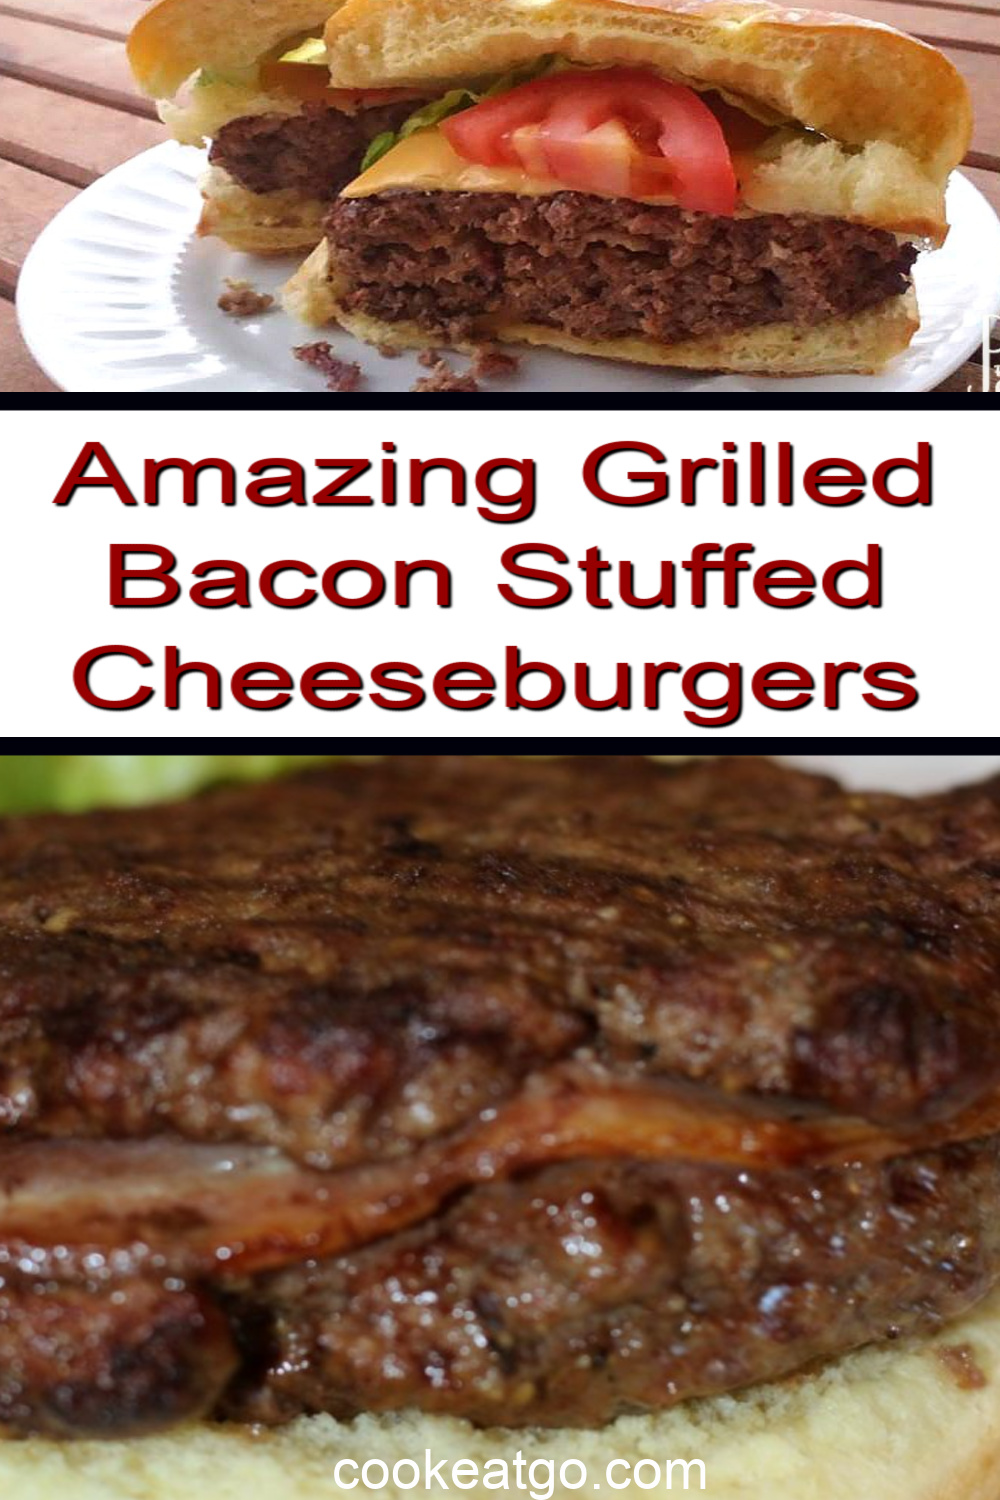 Grilled Bacon Stuffed Cheeseburgers are the perfect burgers to make to celebrate summer and warm weather. They are easy to make when burger press and sure to be a hit at any bbq get together. Plus stuffing the bacon in the burger allows it to absorb the flavor into the burger.